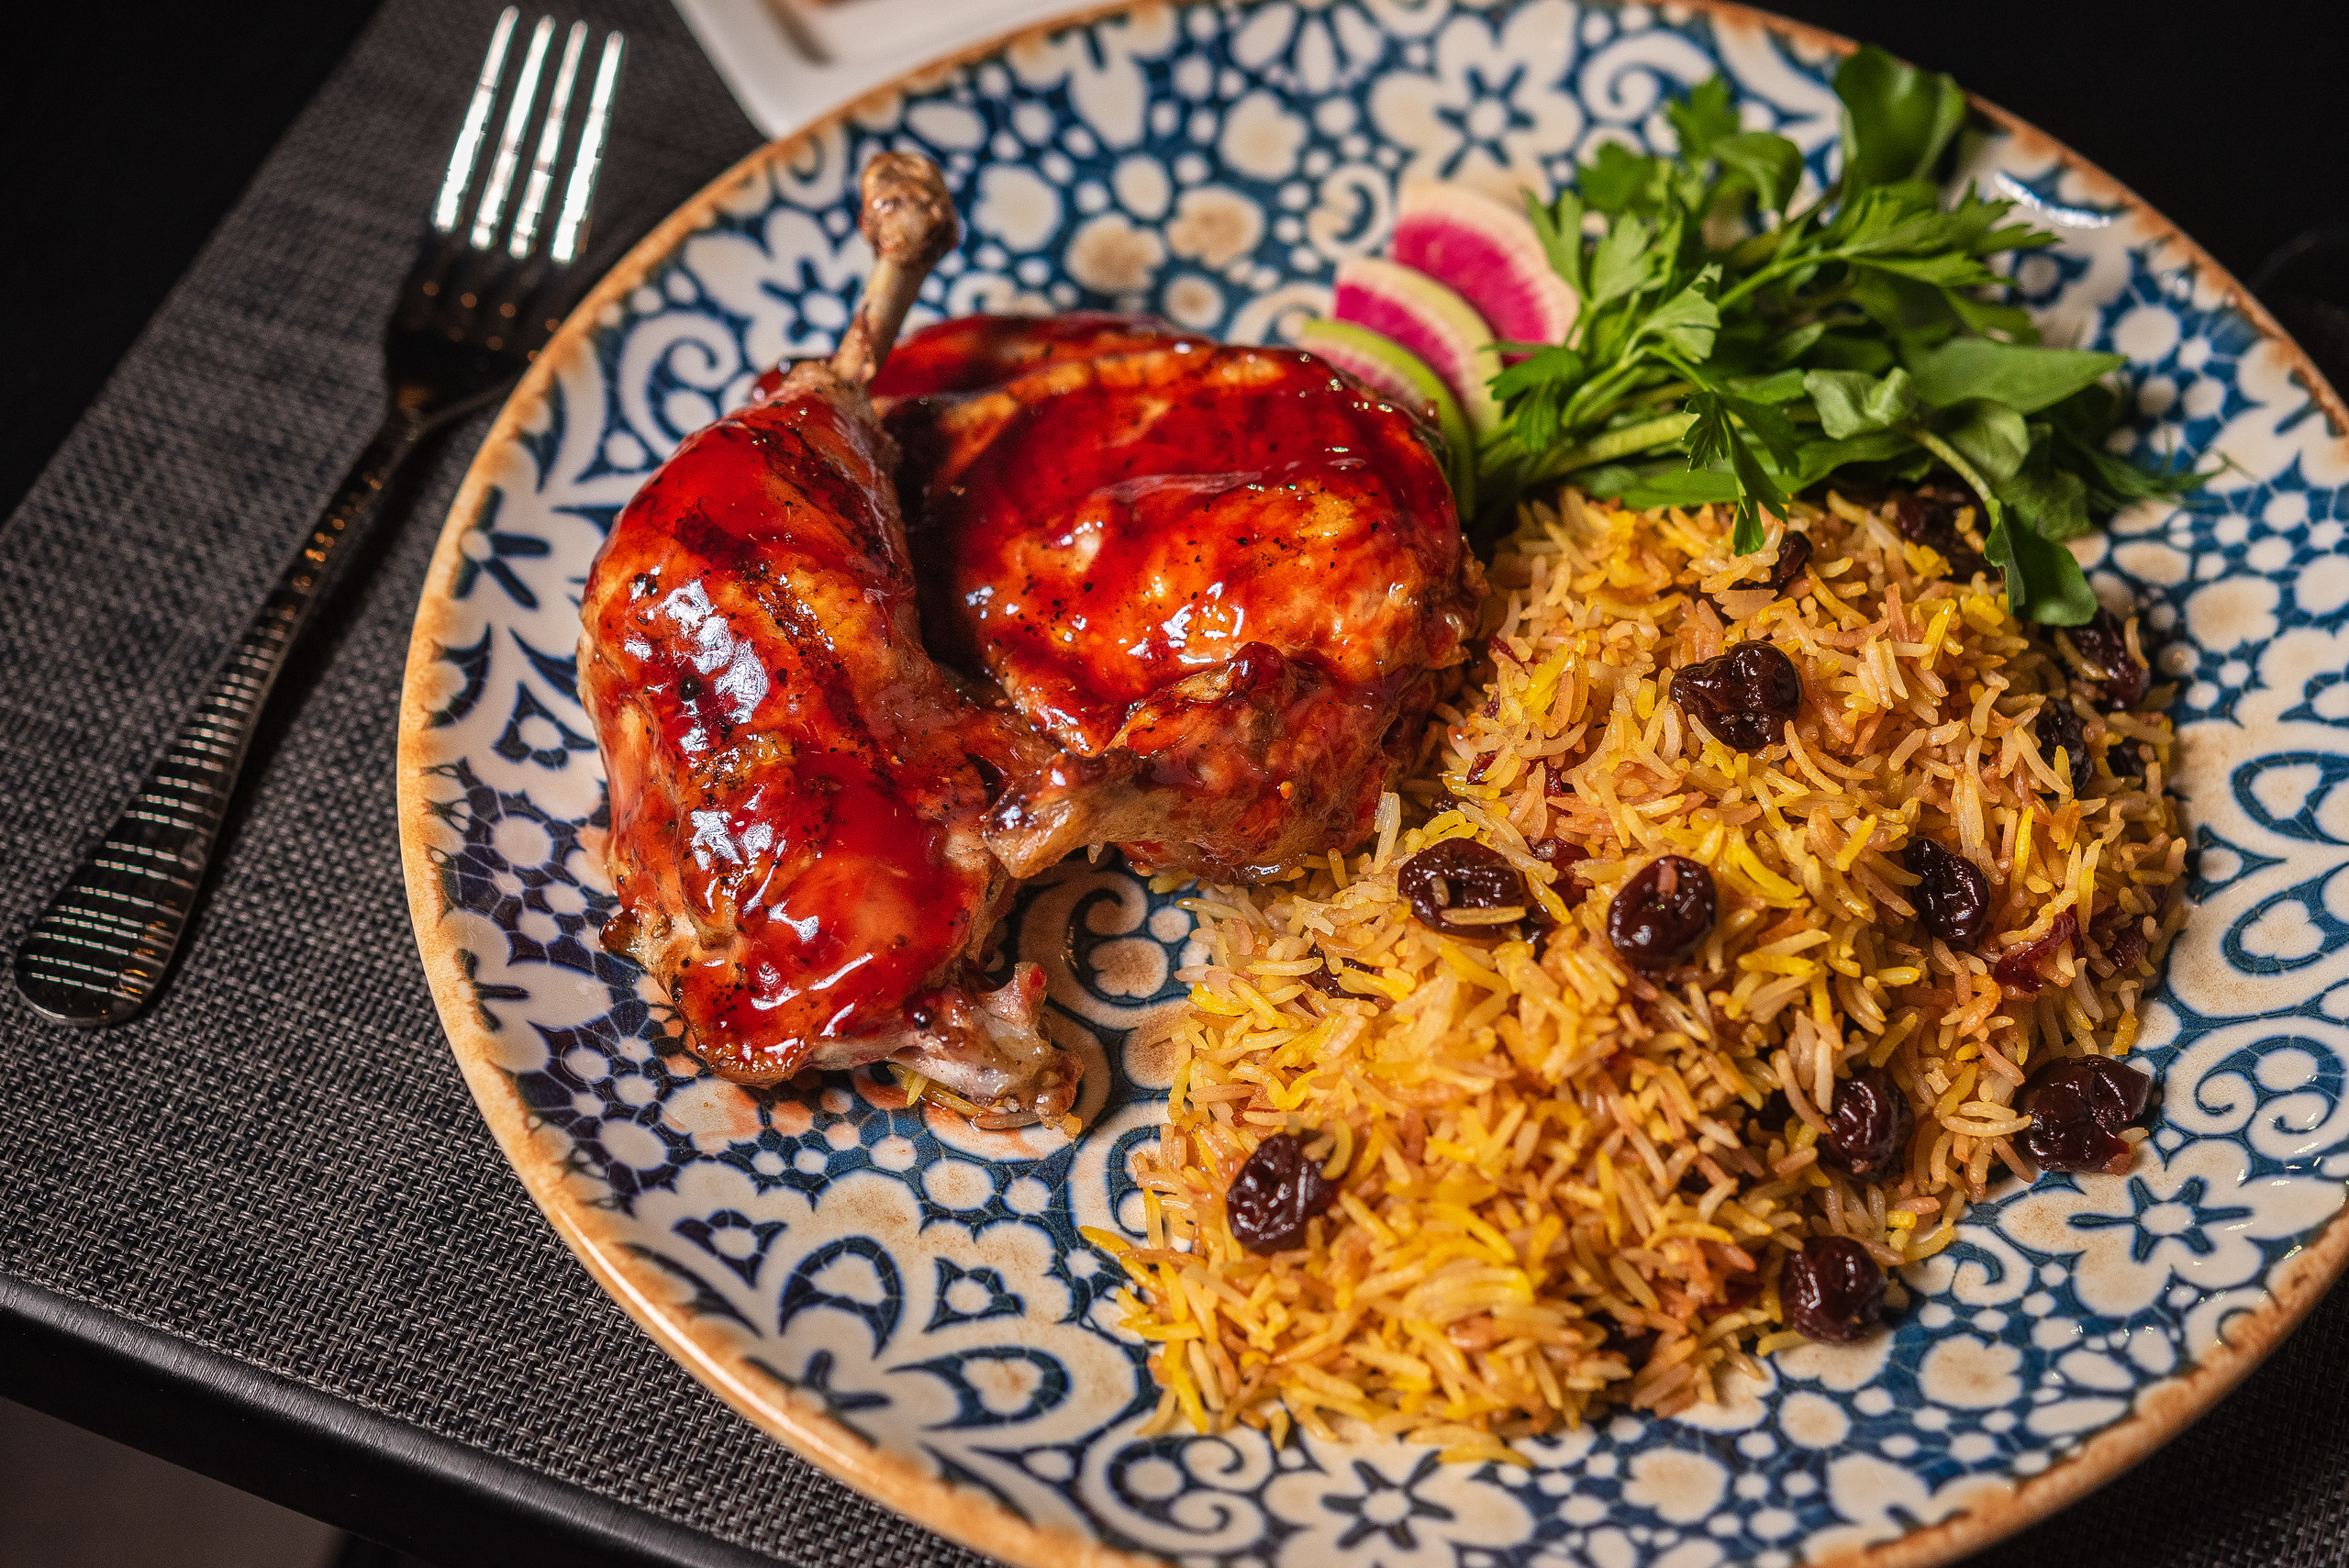 Sour cherry rice served with roasted chicken that's been glazed in a reduced pomegranate sauce